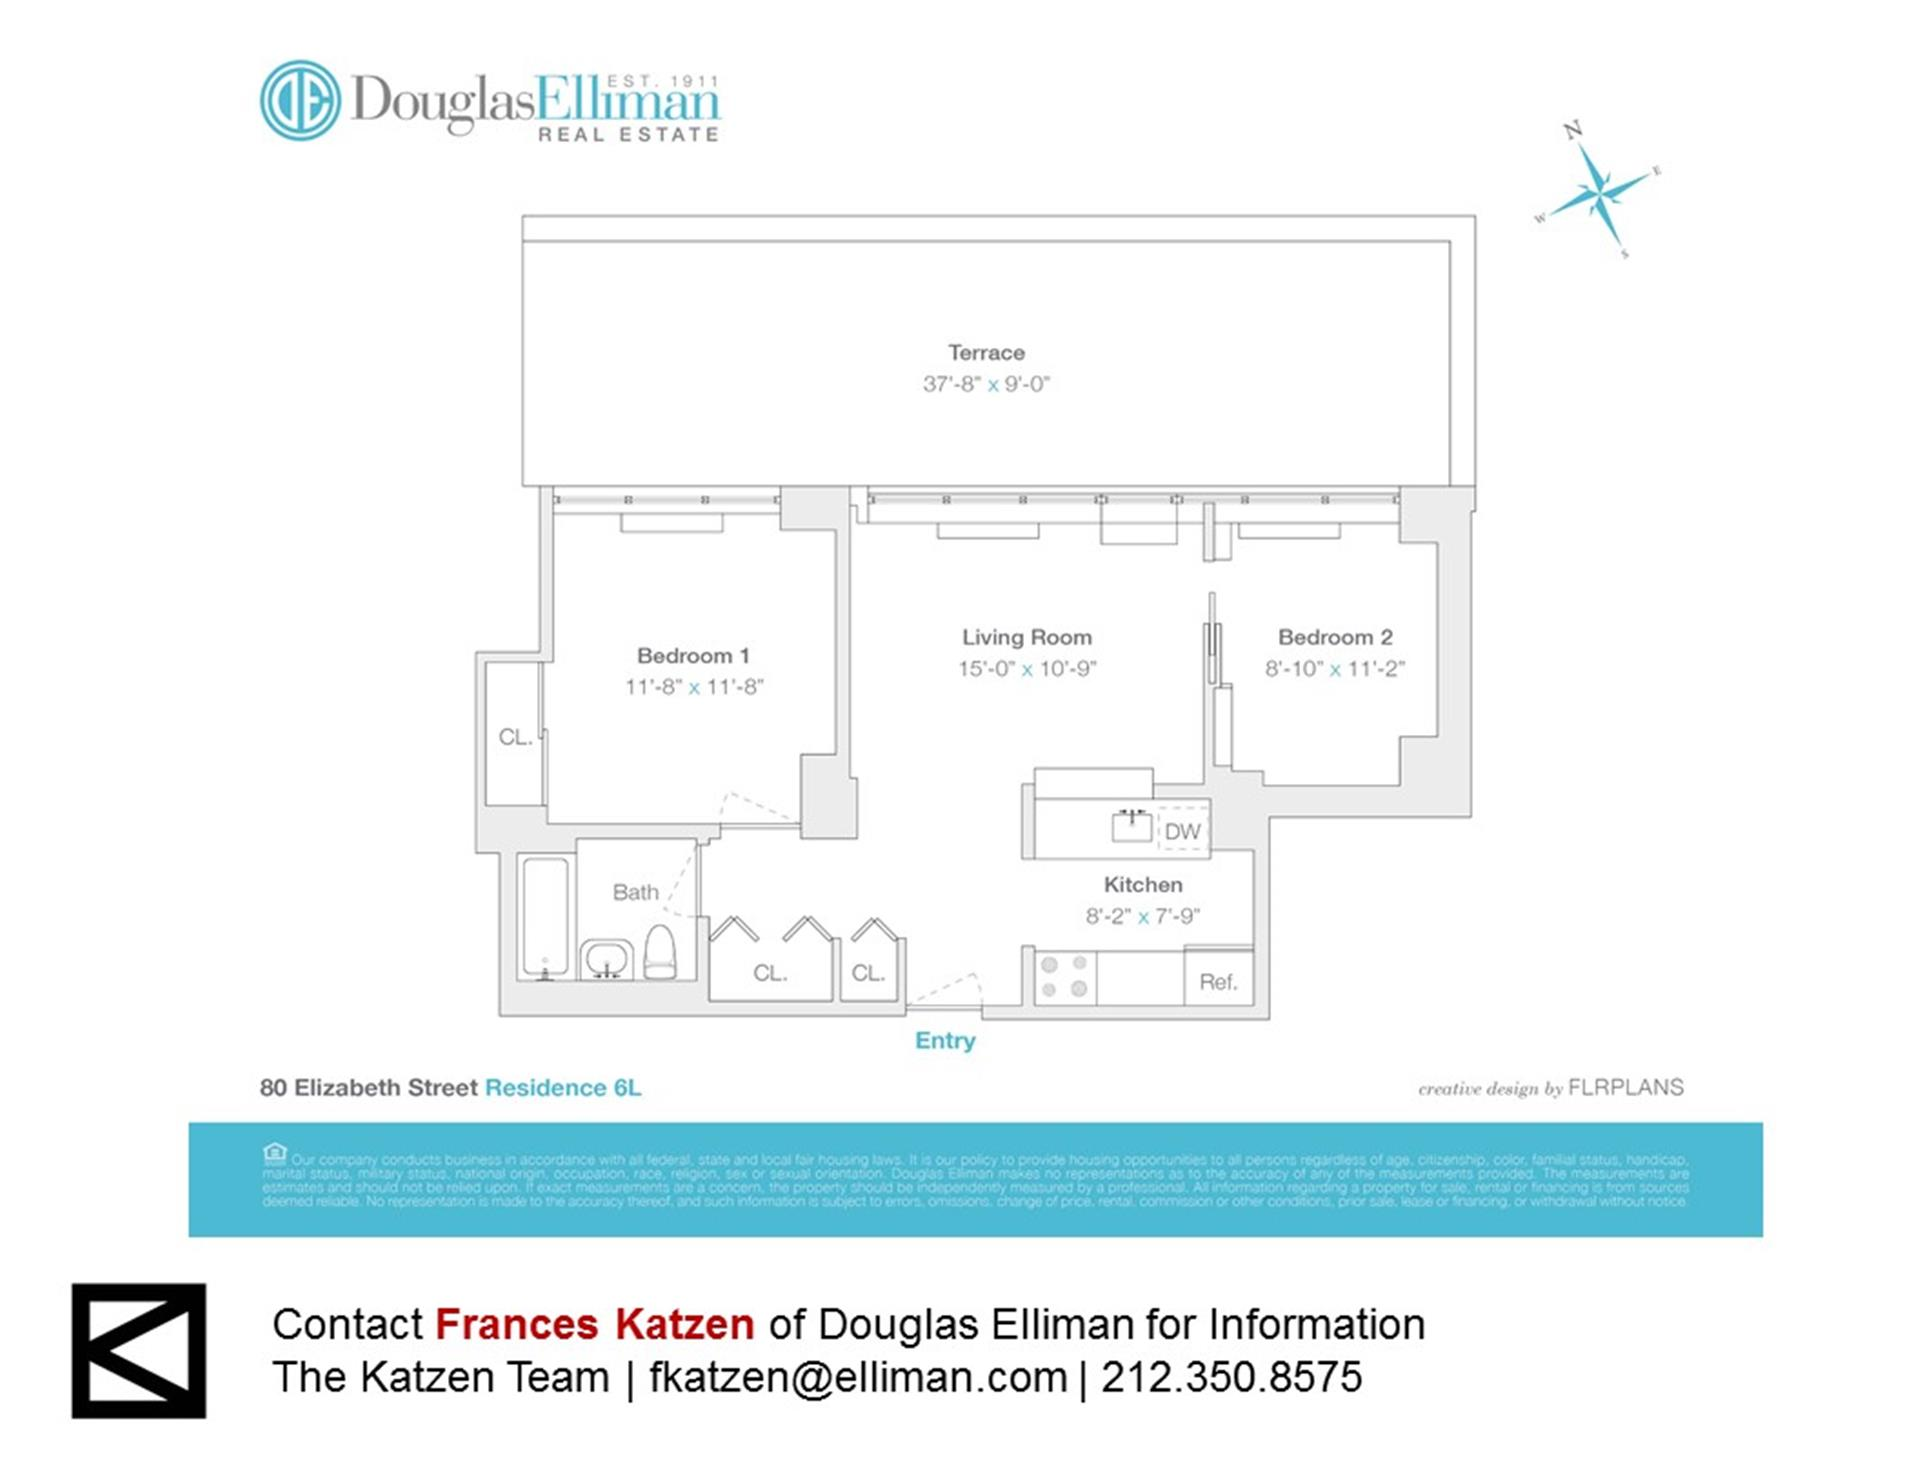 Floor plan of 80 Elizabeth St, 6L - Little Italy - Chinatown, New York